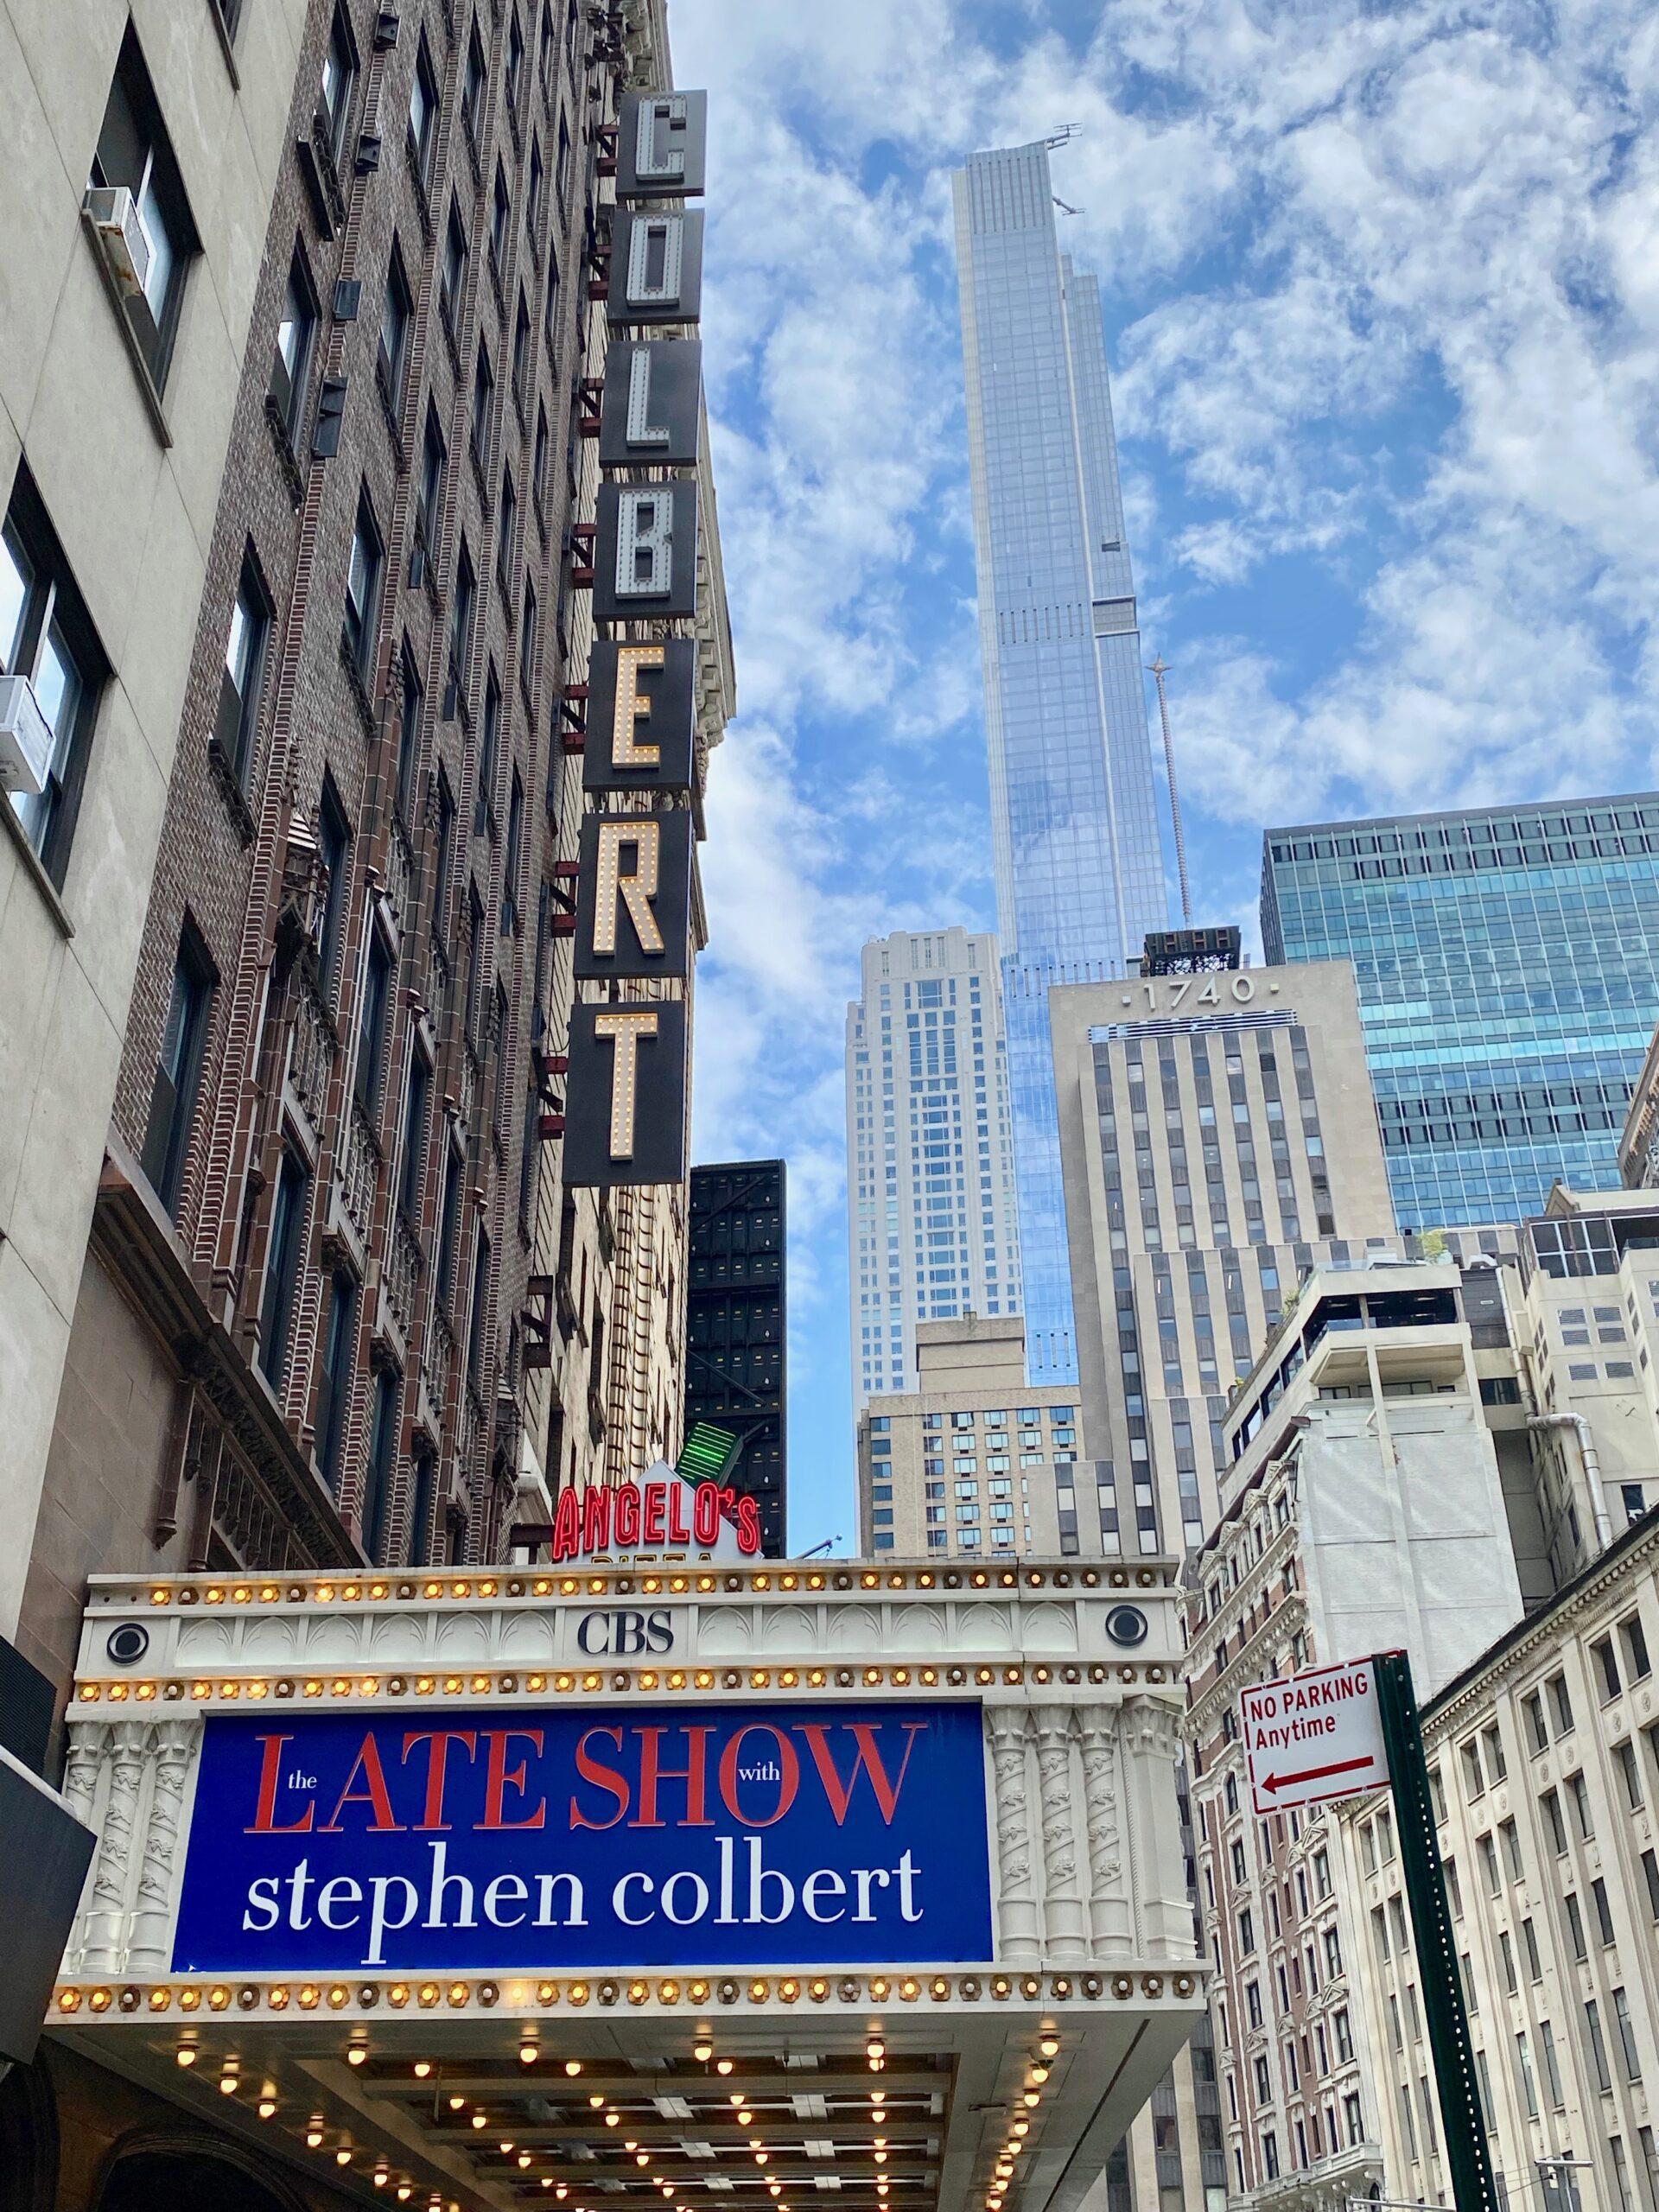 facade of the Ed Sullivan theater home to the Late Show with Stephen Colbert in NYC